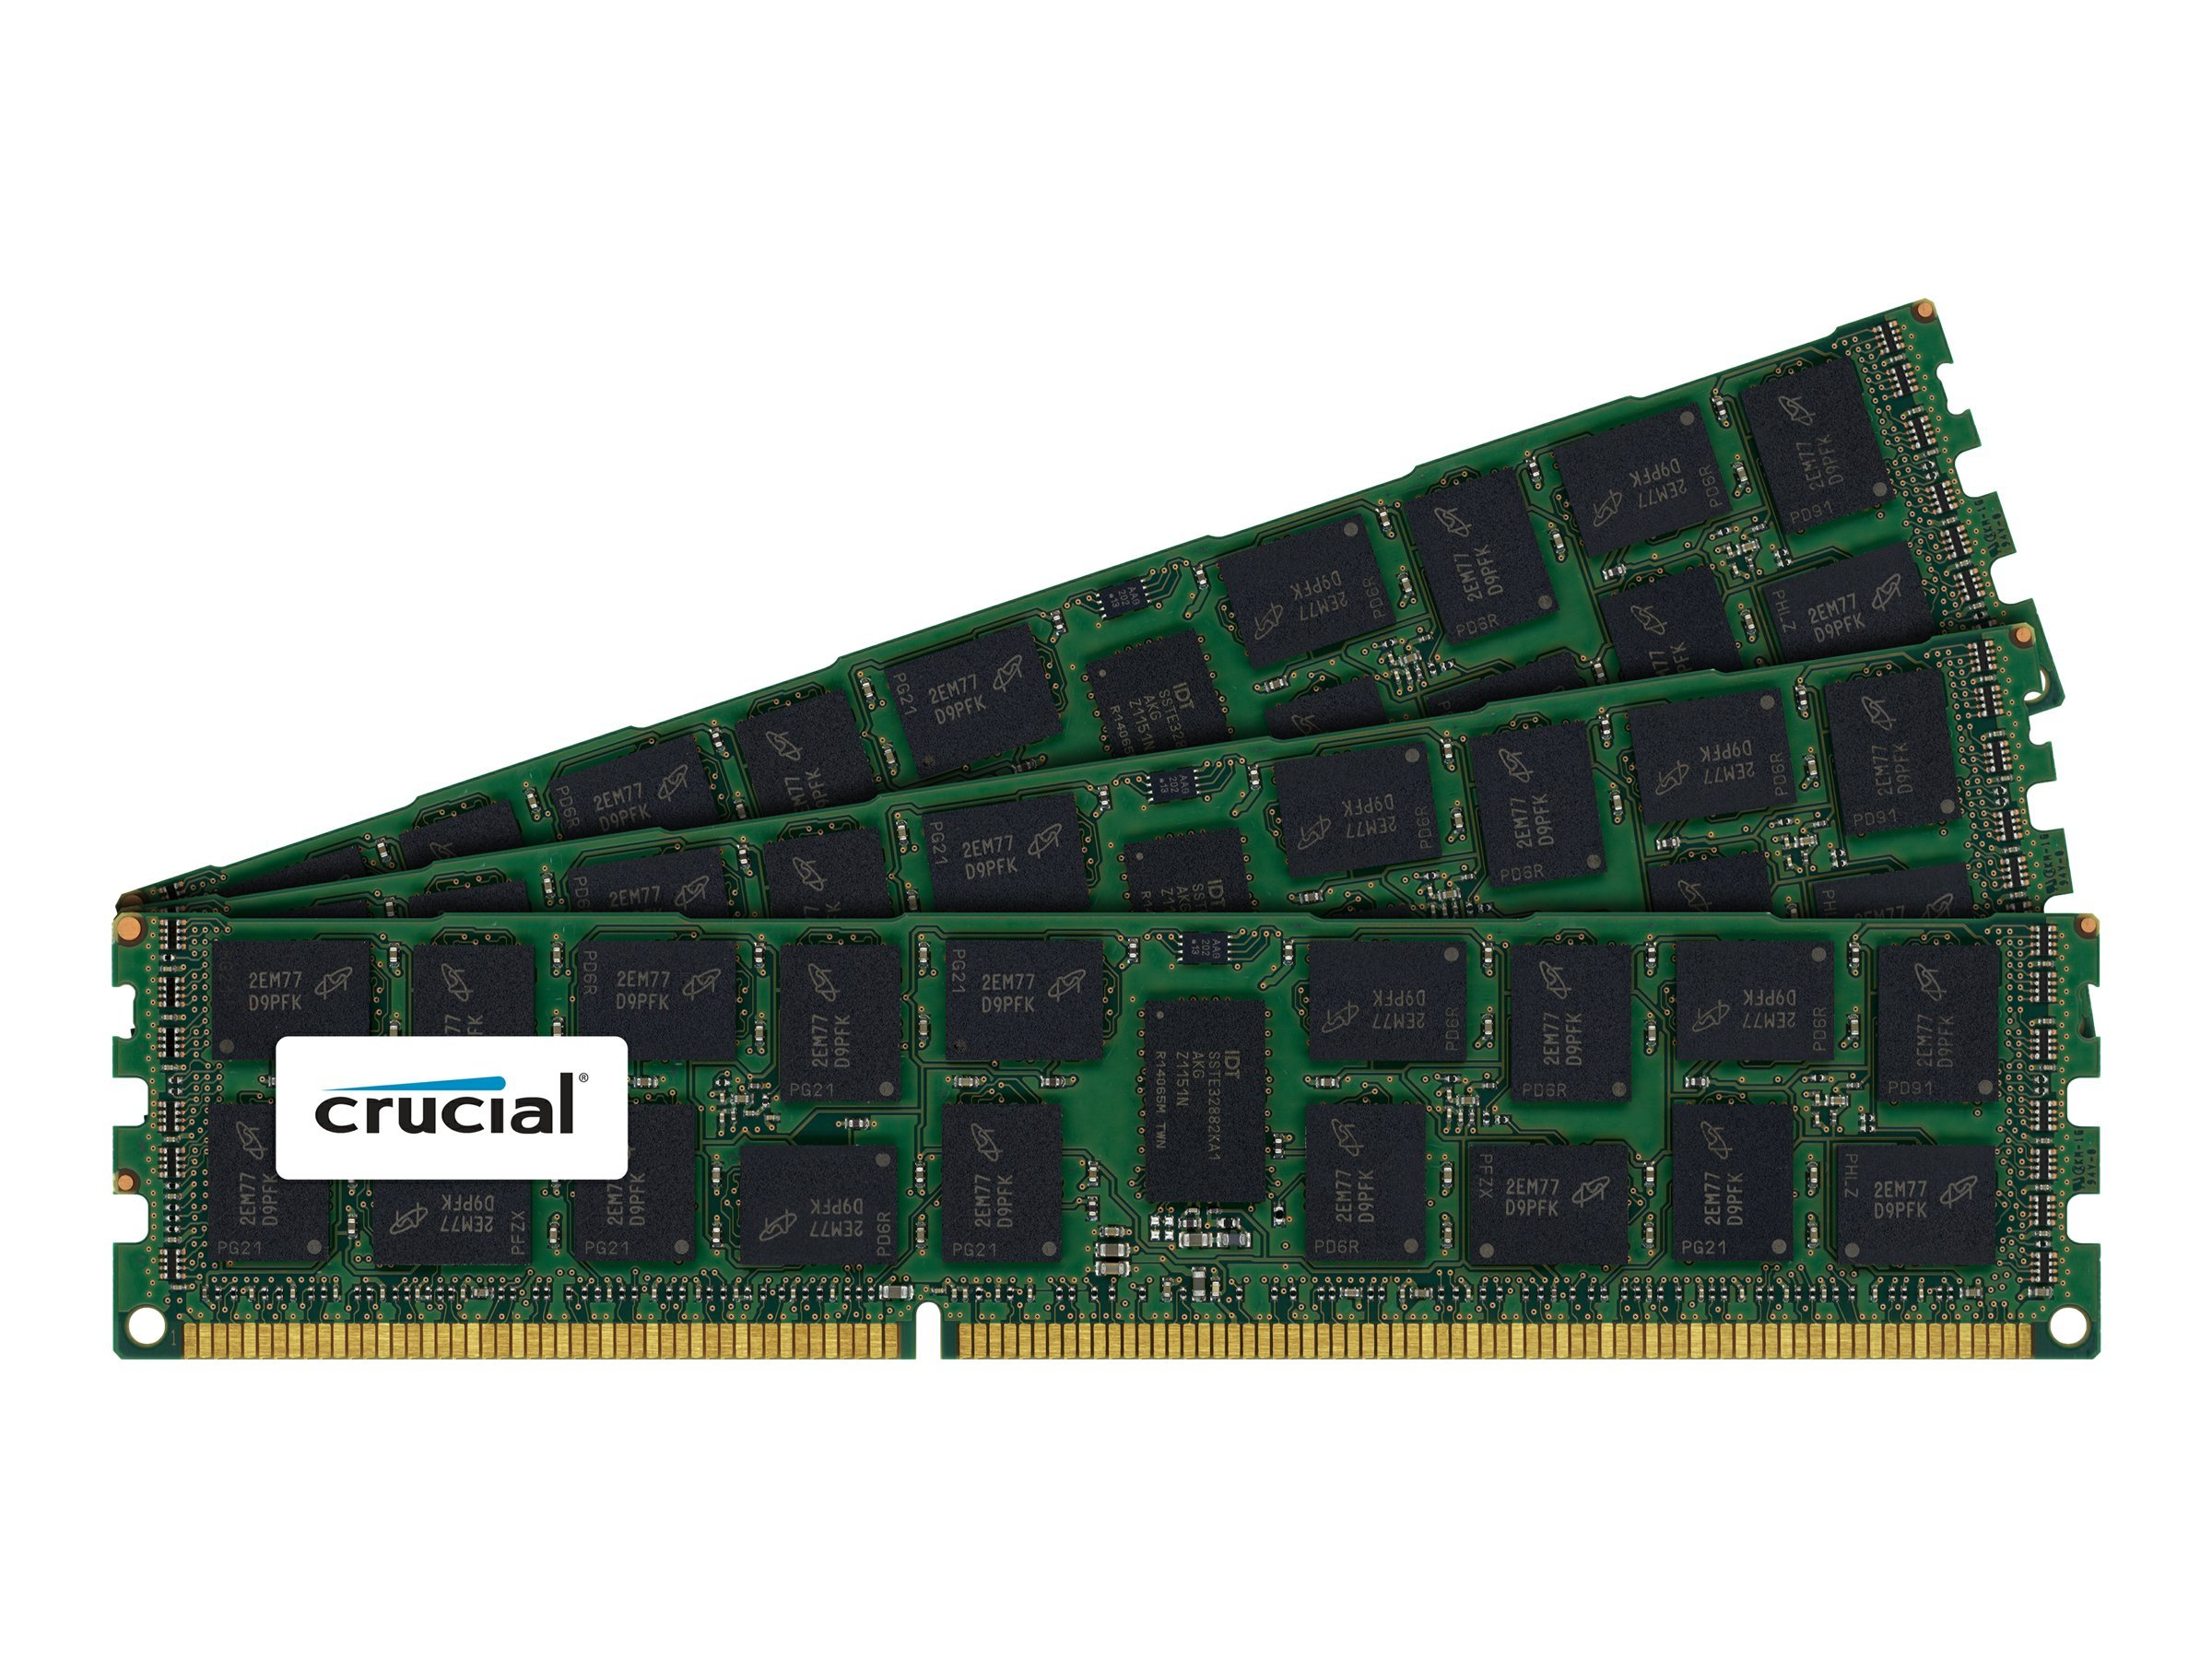 Crucial 96GB  PC3-8500 240-pin DDR3 SDRAM DIMM Kit